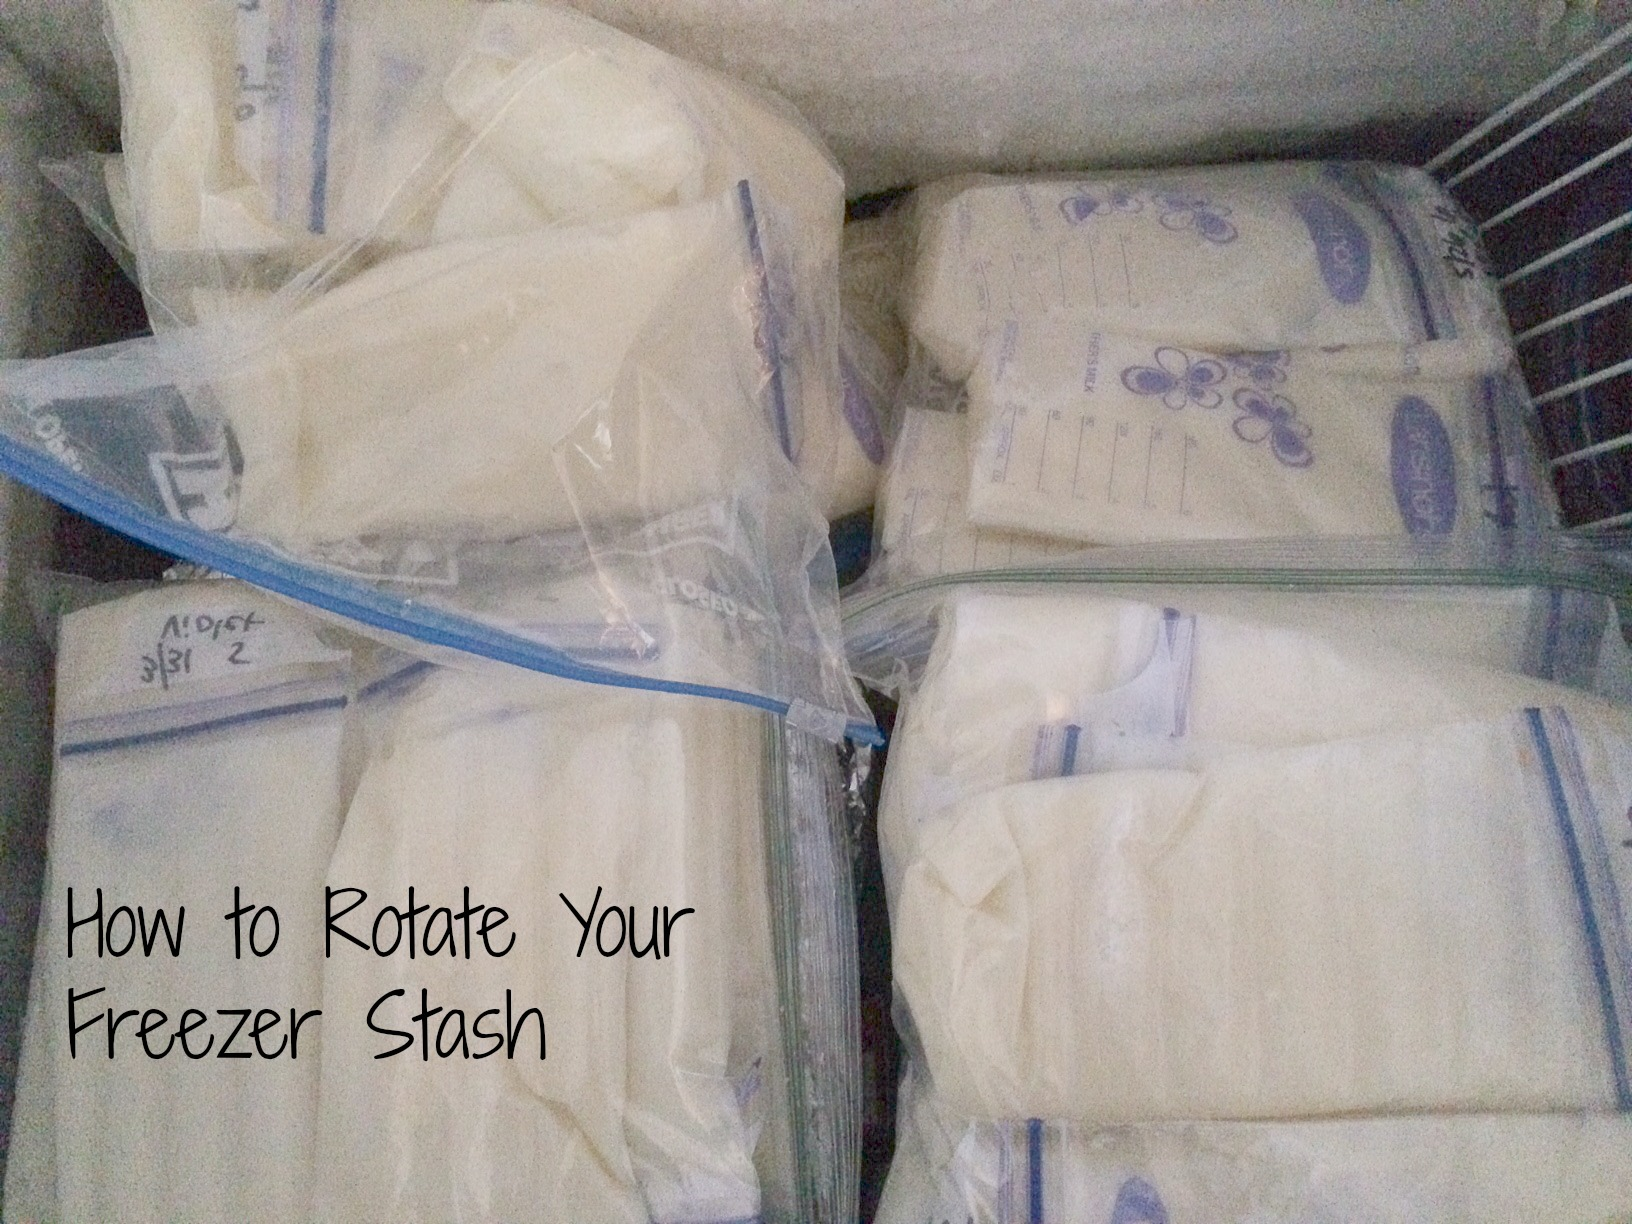 how to rotate your freezer stash